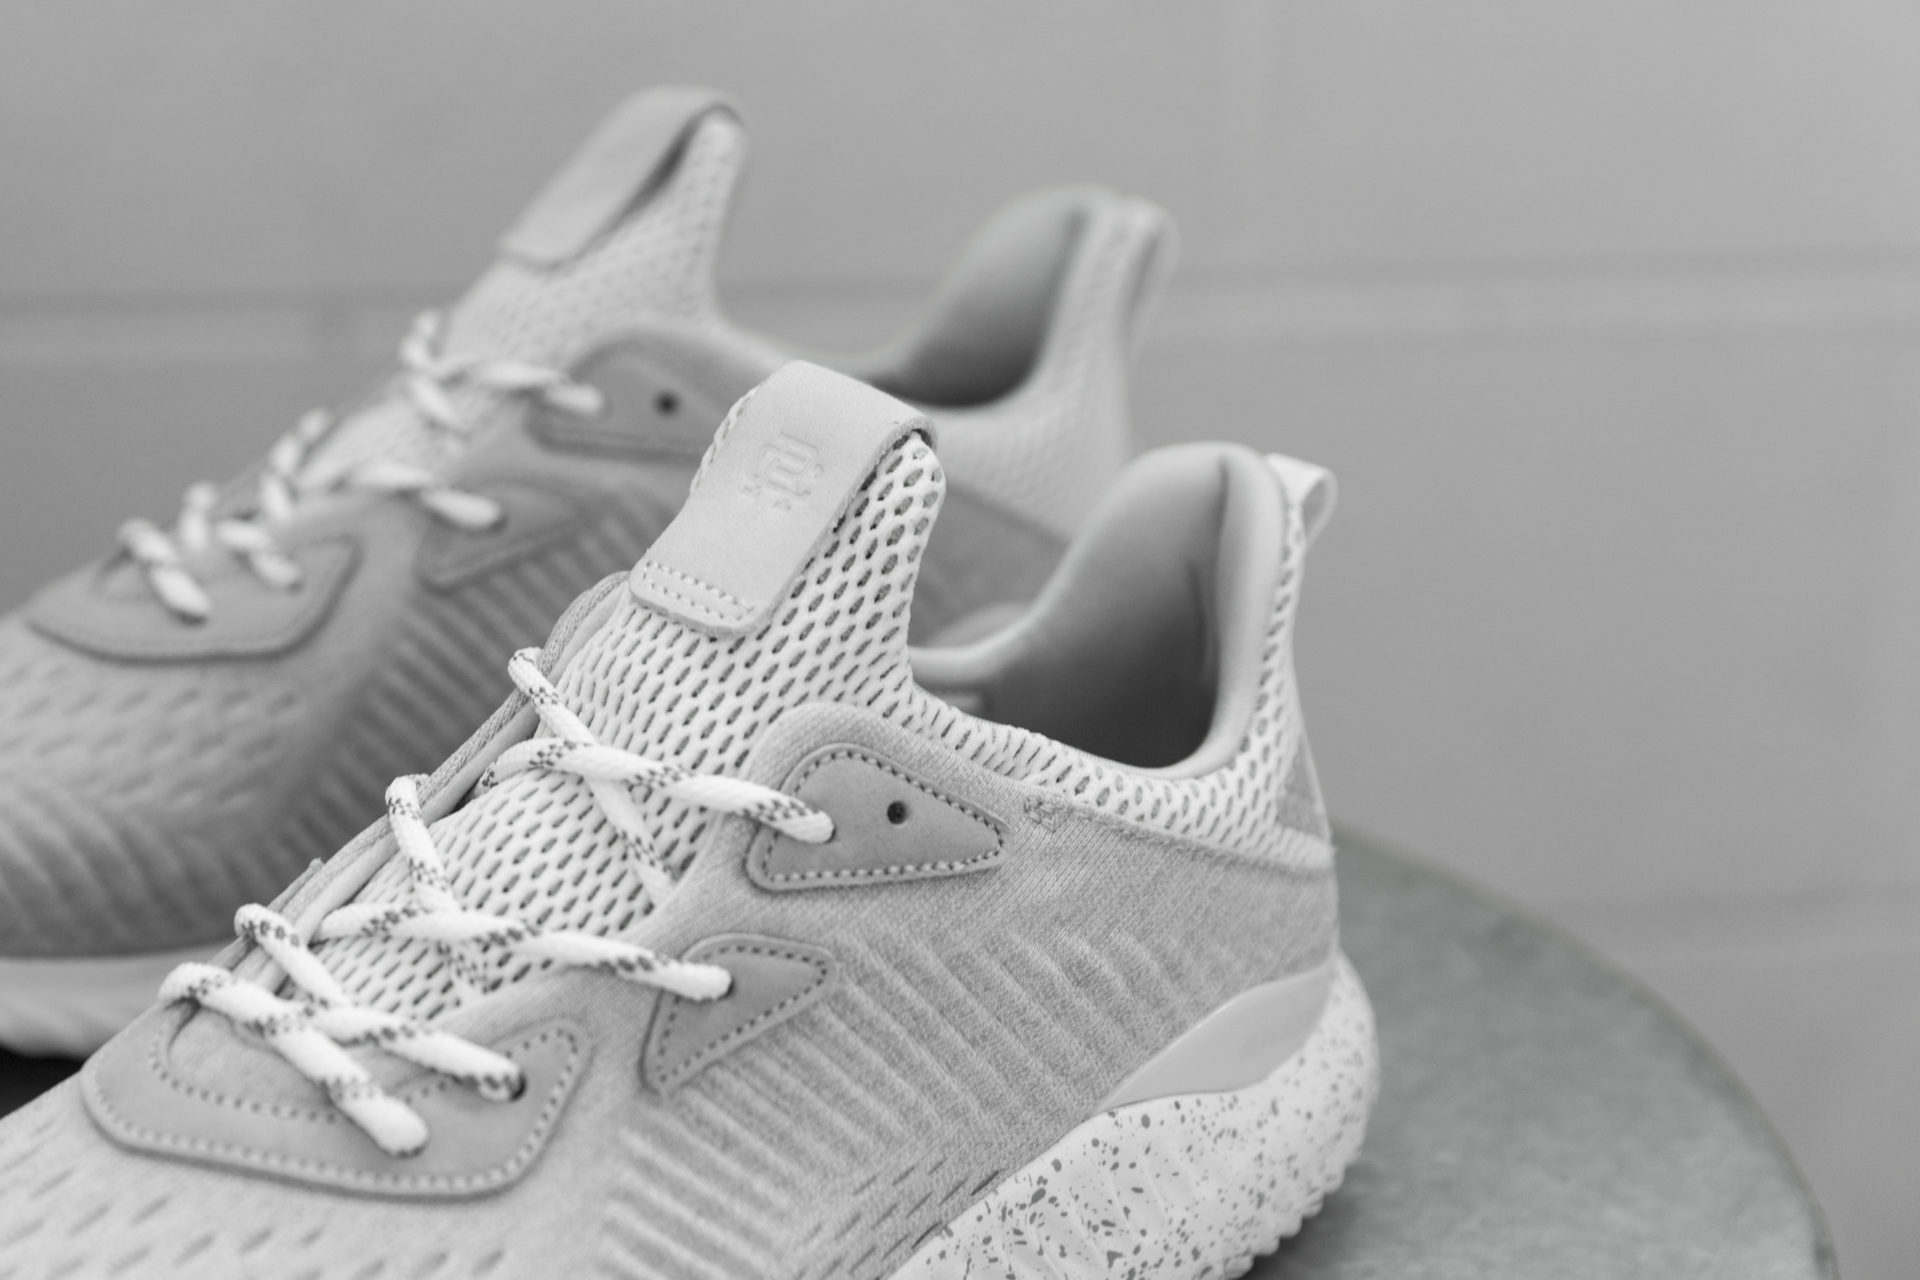 Reigning Champ x adidas Ultra Boost and Alphabounce Release